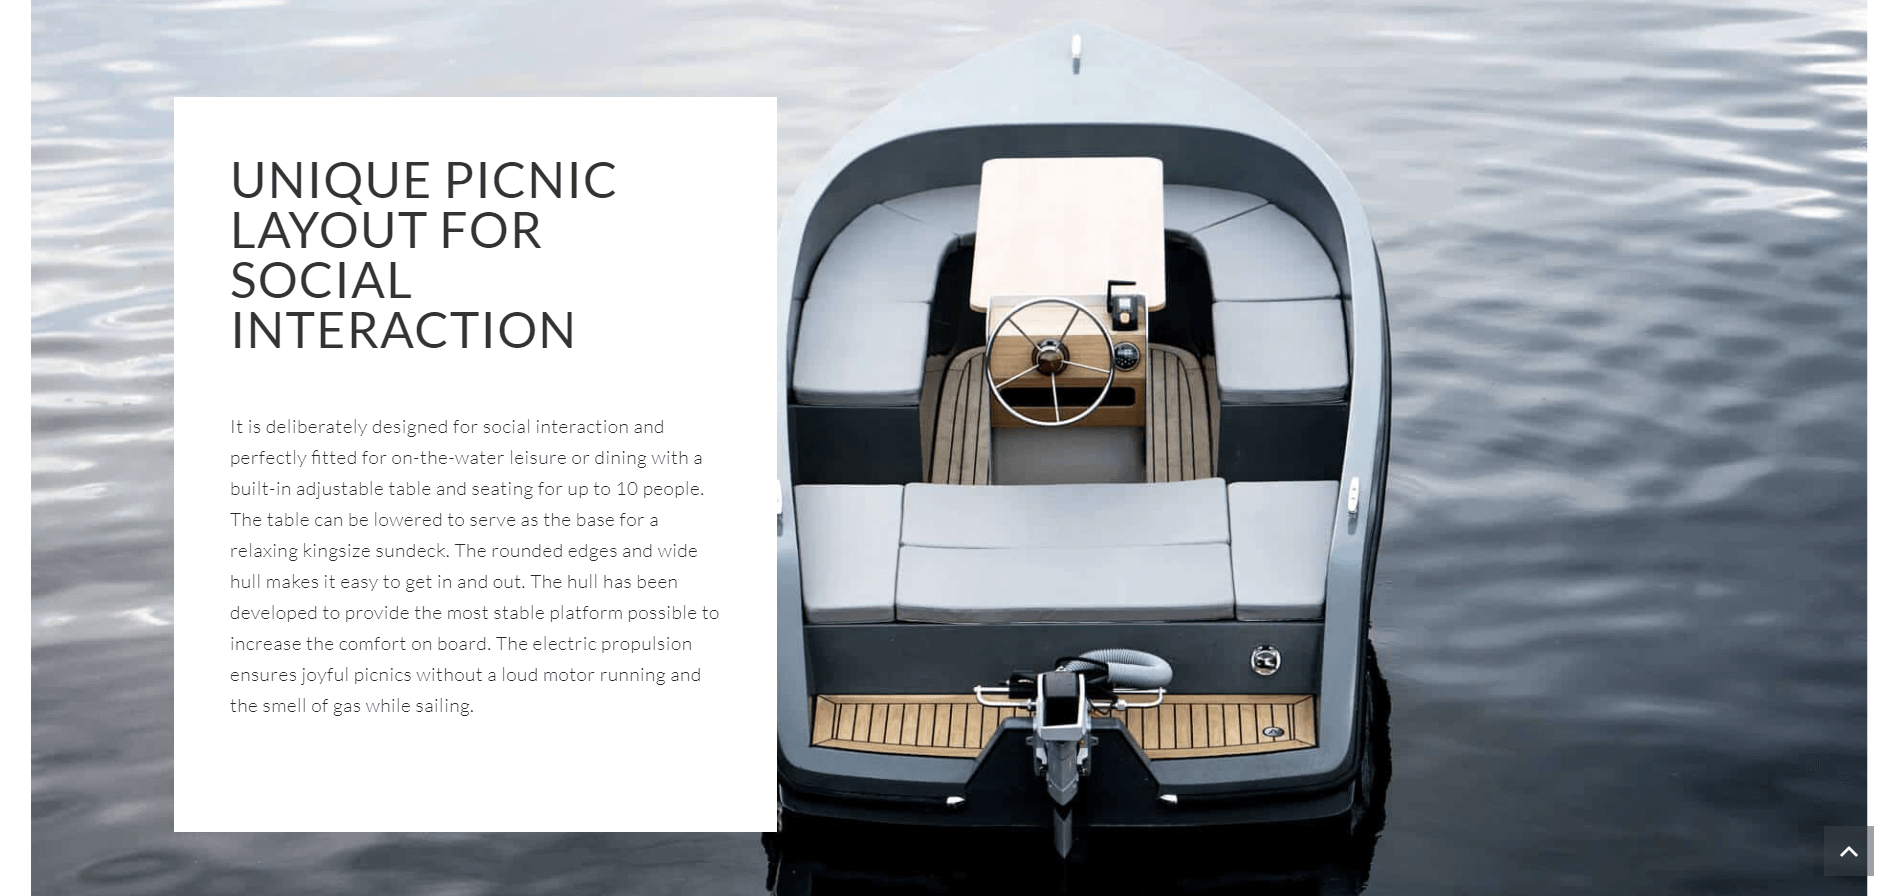 karoline, paarup, portfolio, website, project, rand, boats, website, visuals